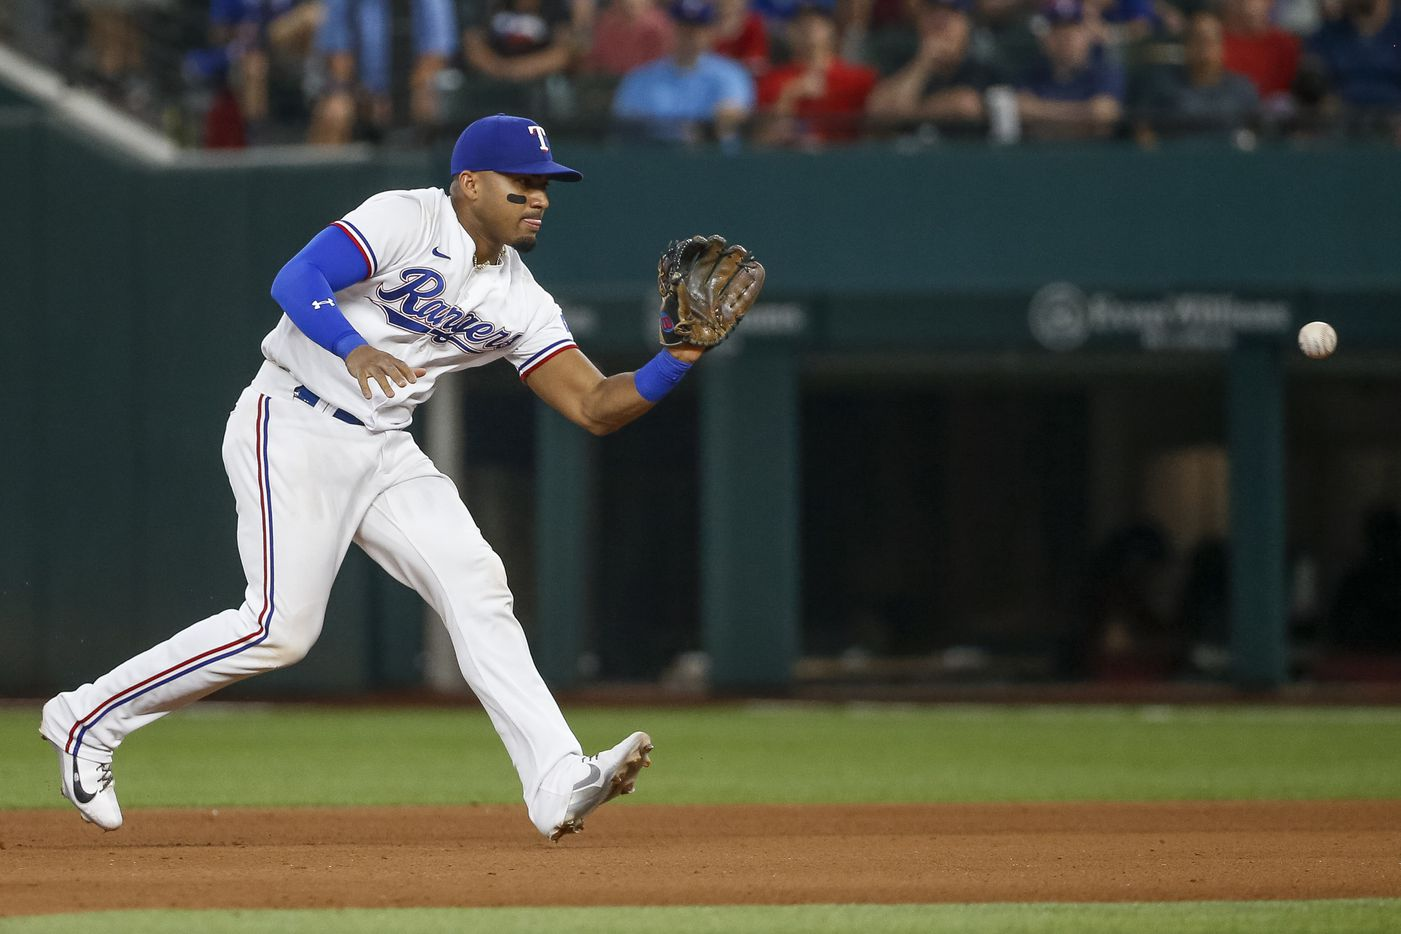 Texas Rangers second baseman Andy Ibanez (77) fields a ball for an out during the fourth inning against the Los Angeles Angels at Globe Life Field on Thursday, Aug. 5, 2021, in Arlington. (Elias Valverde II/The Dallas Morning News)